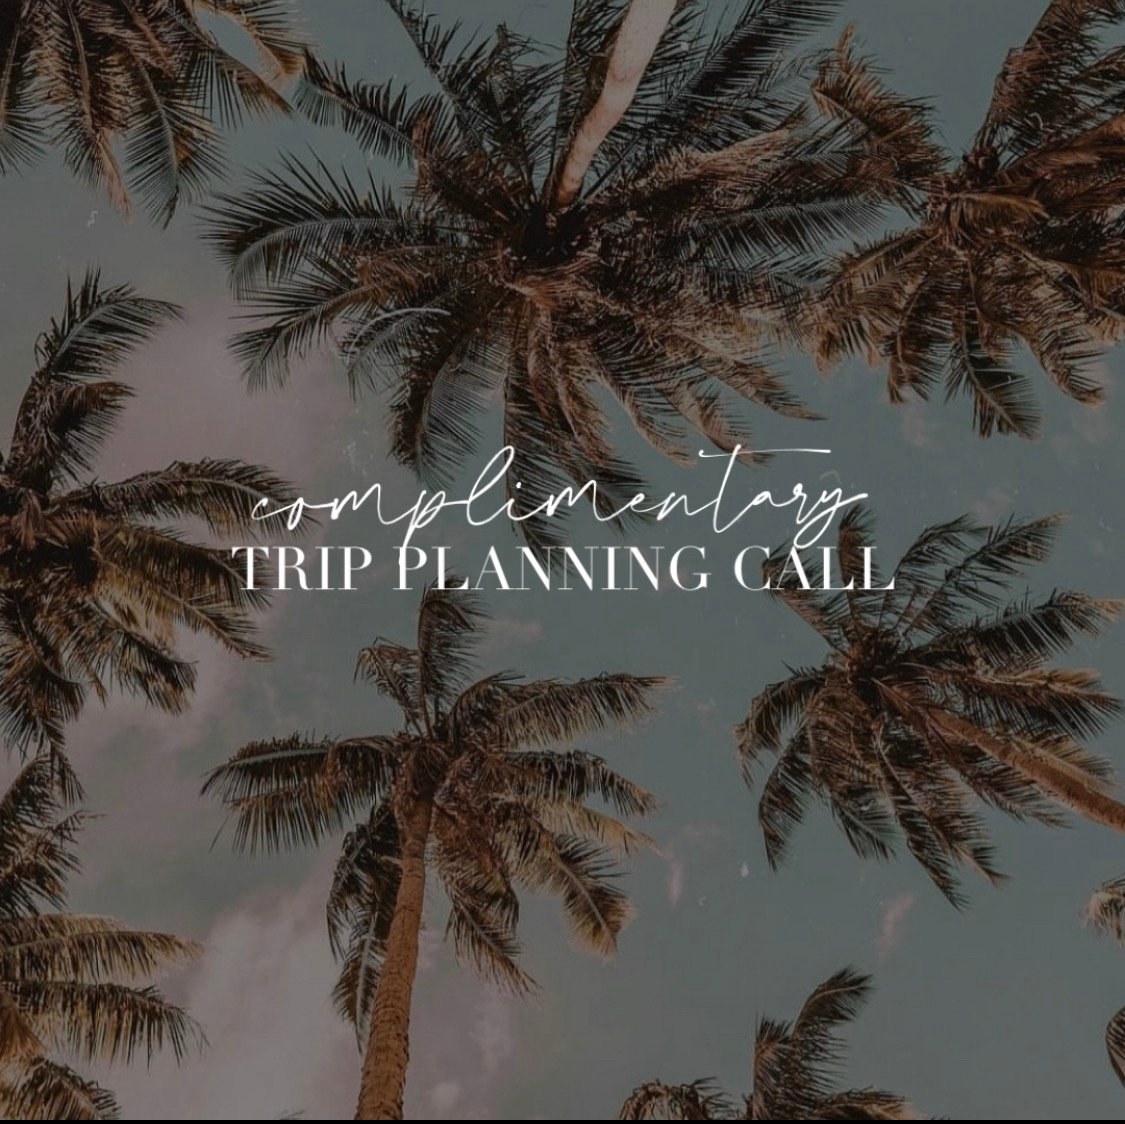 Complimentary Trip Planning Call